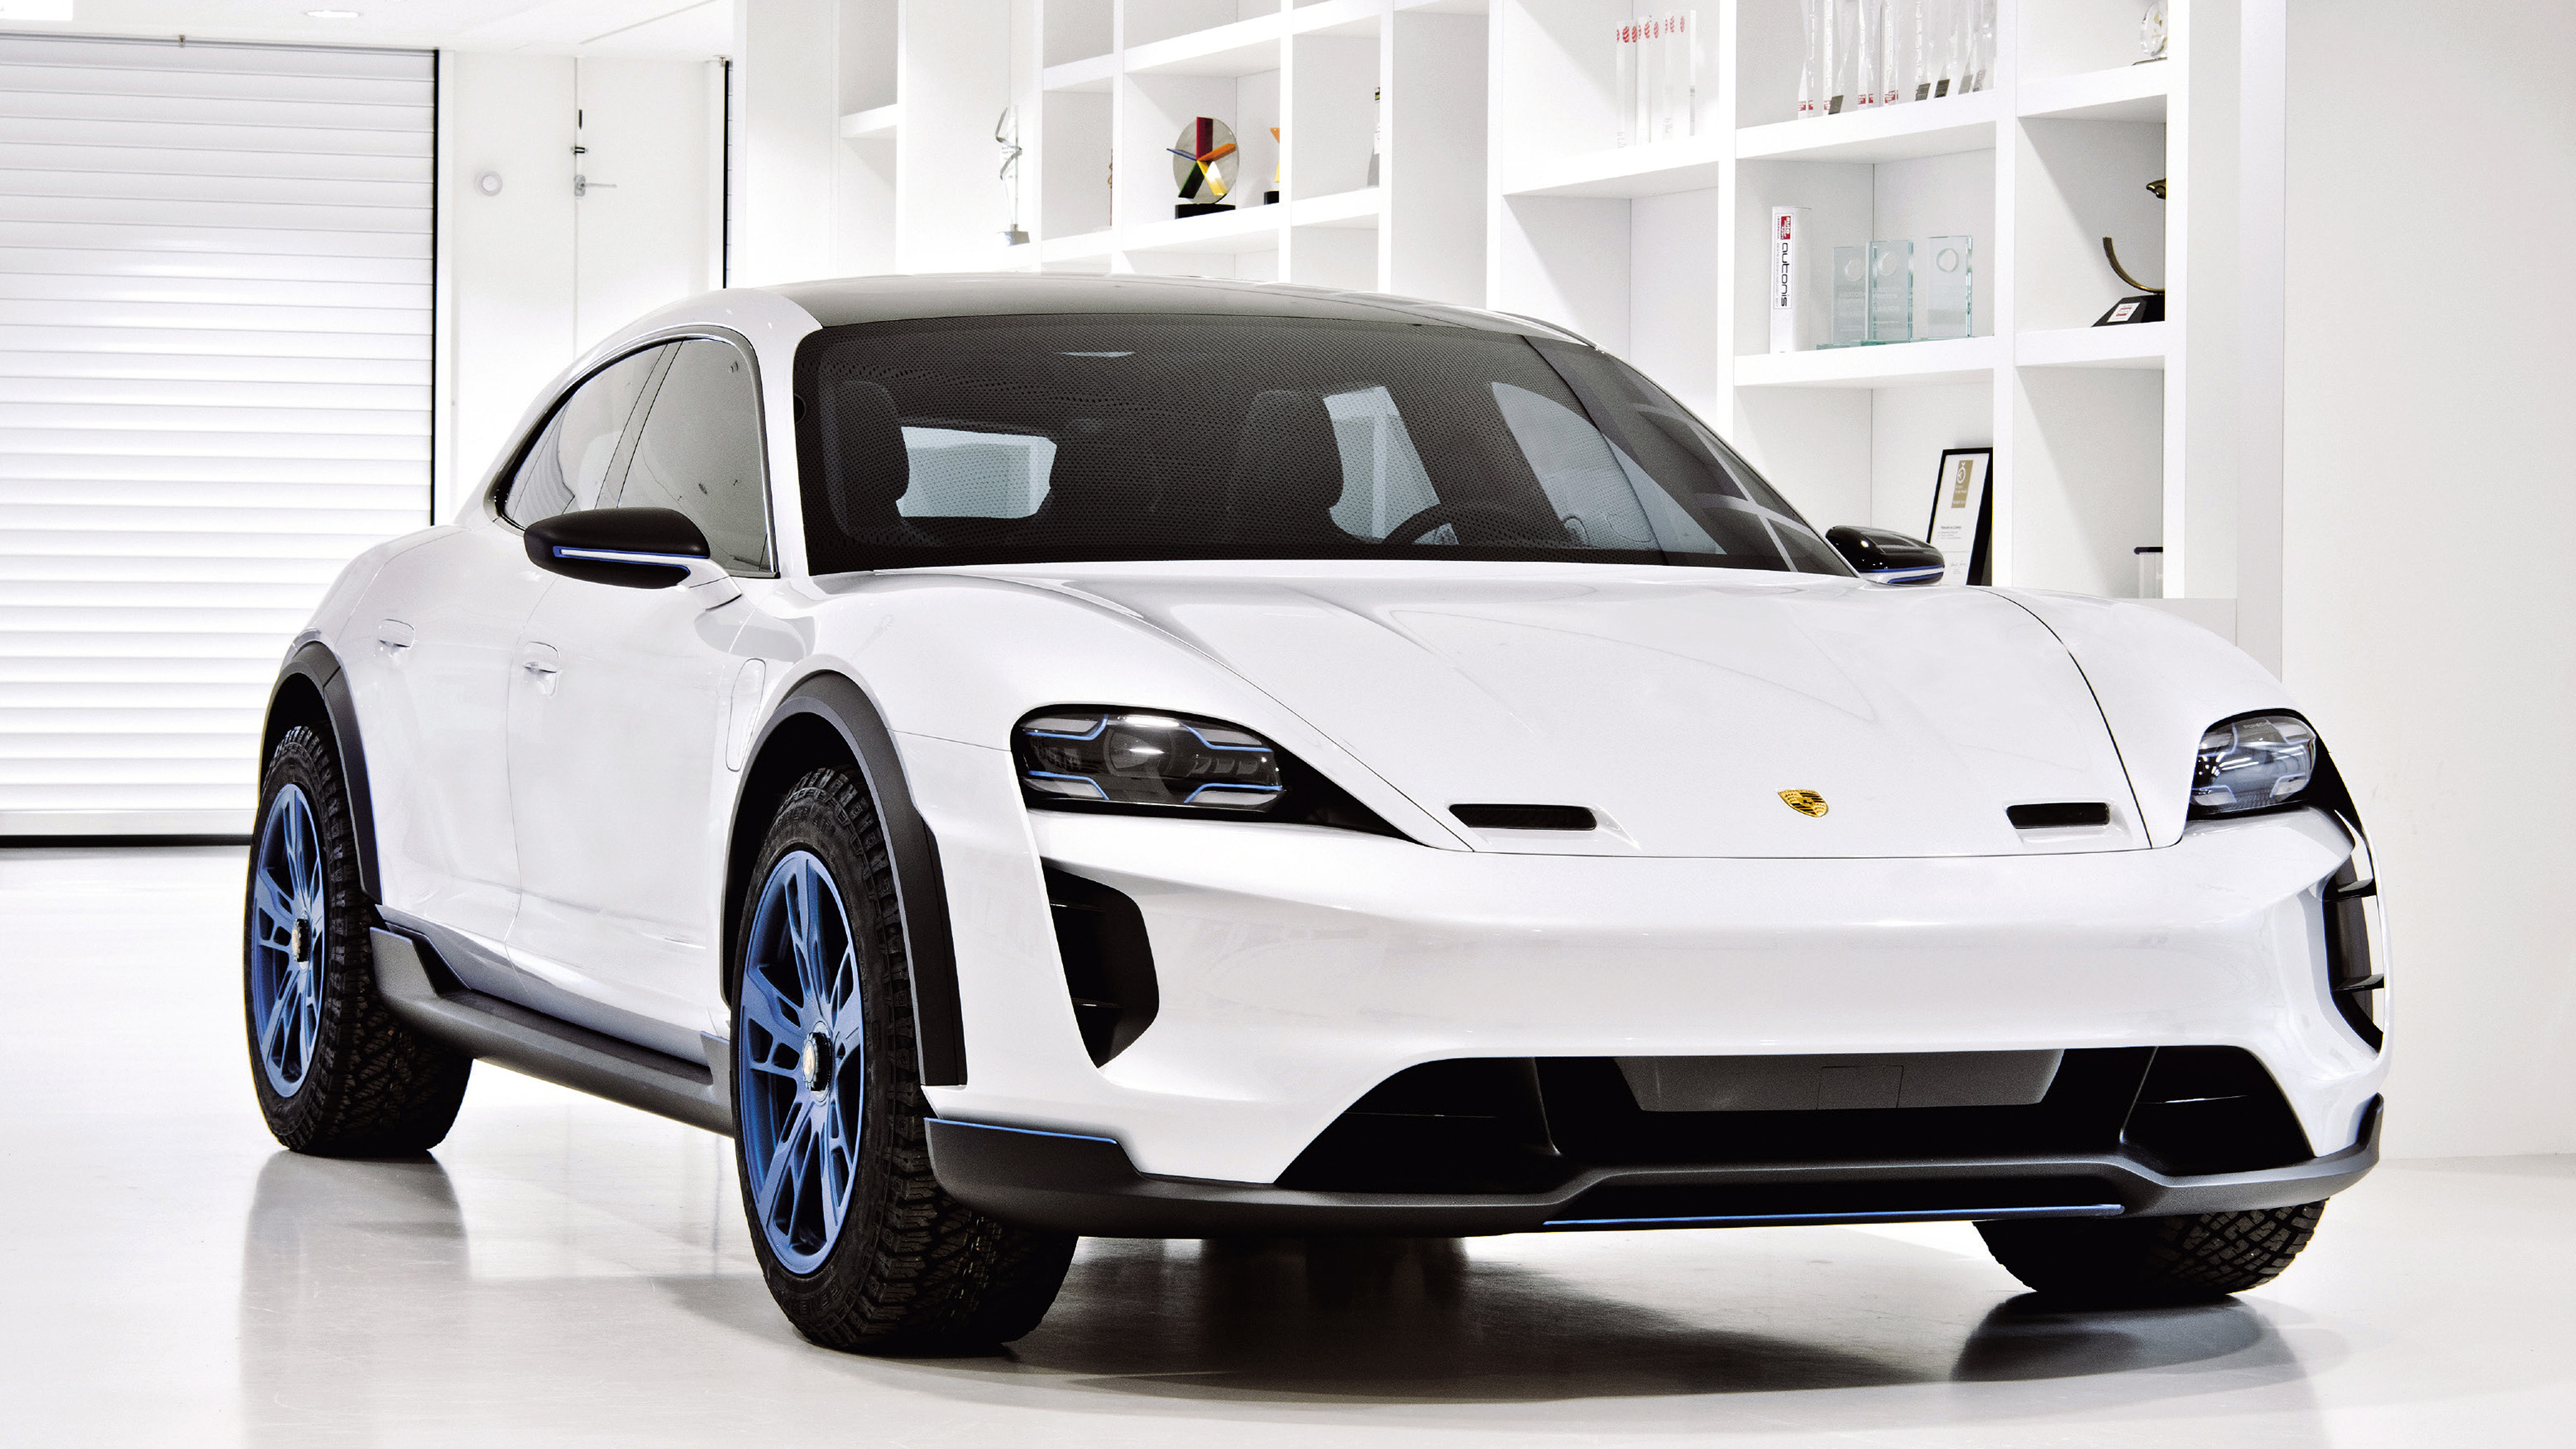 Porsche Mission E Cross Turismo 2018 Hd Cars 4k Wallpapers Images